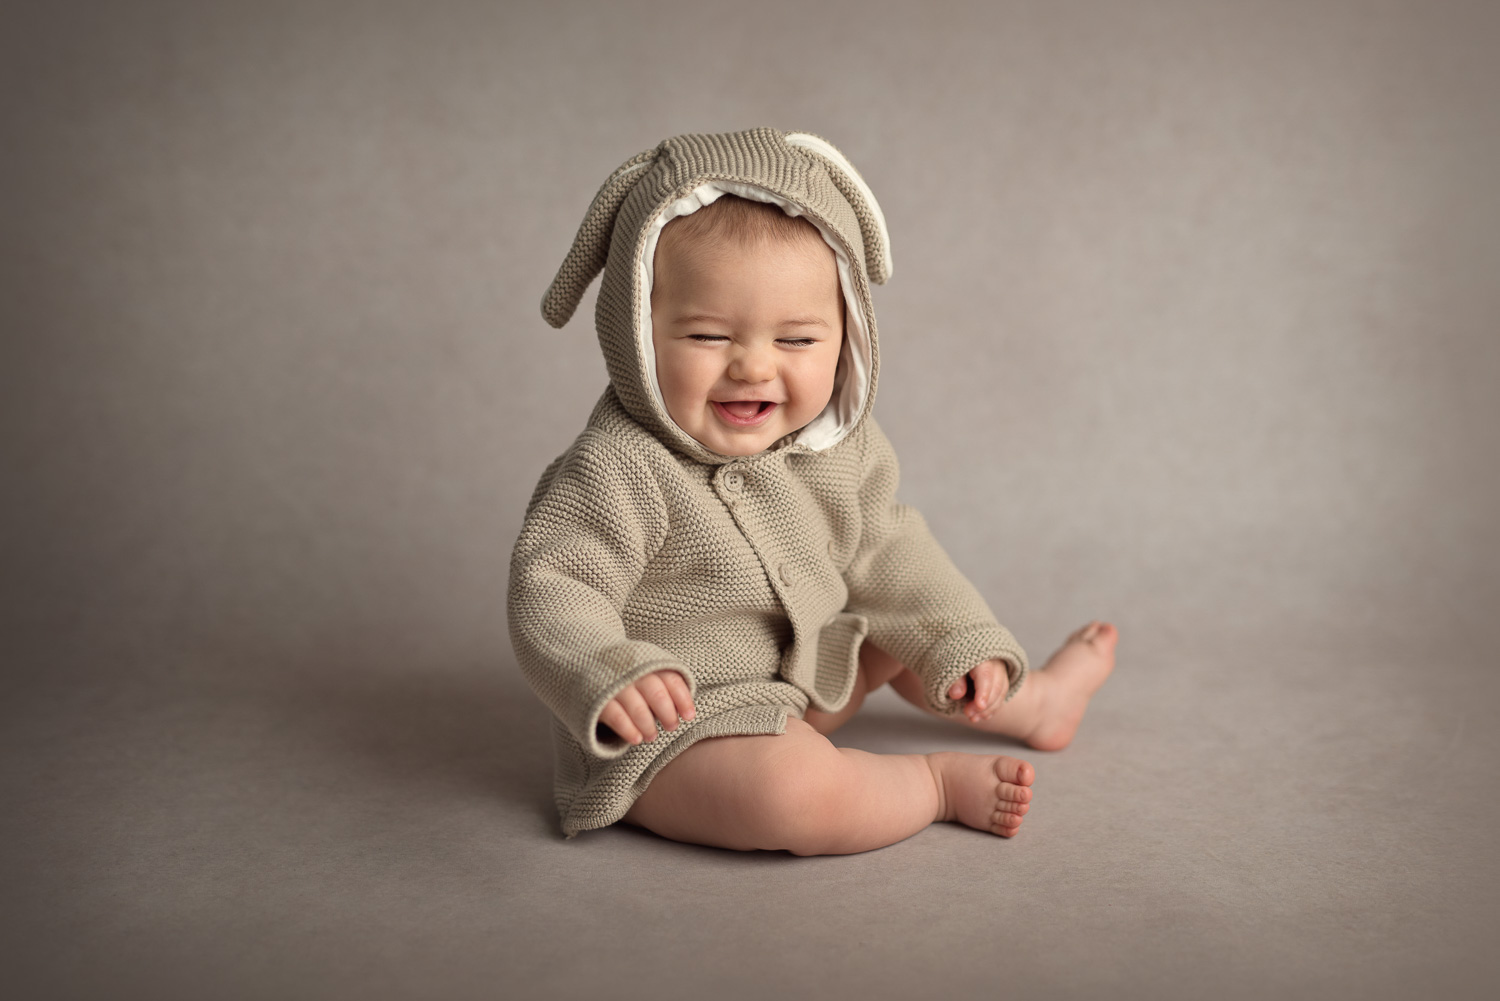 cute baby laughing in rabbit outfit